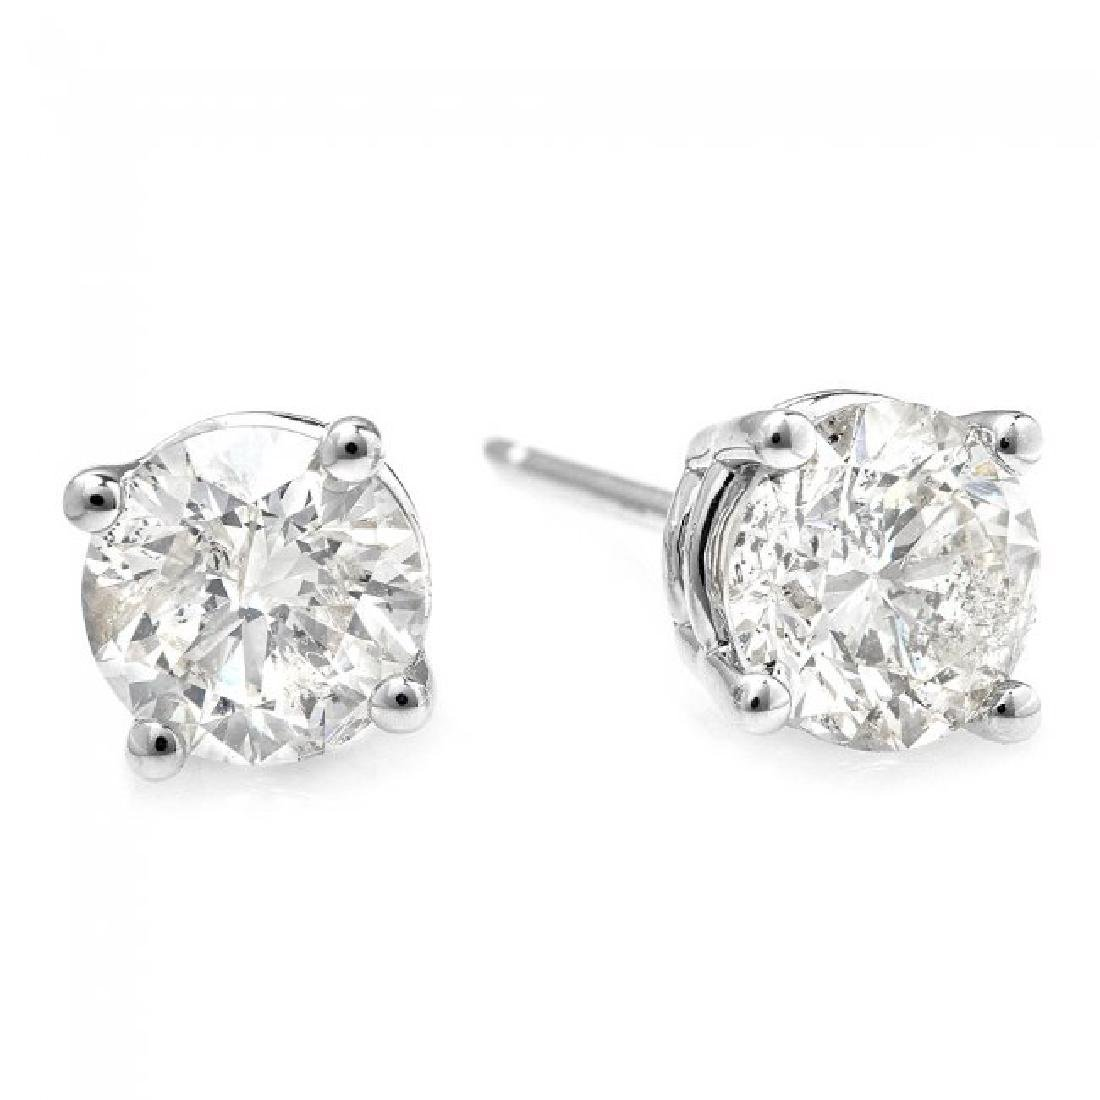 14k White Gold 1.00ct Diamond Earrings - 2